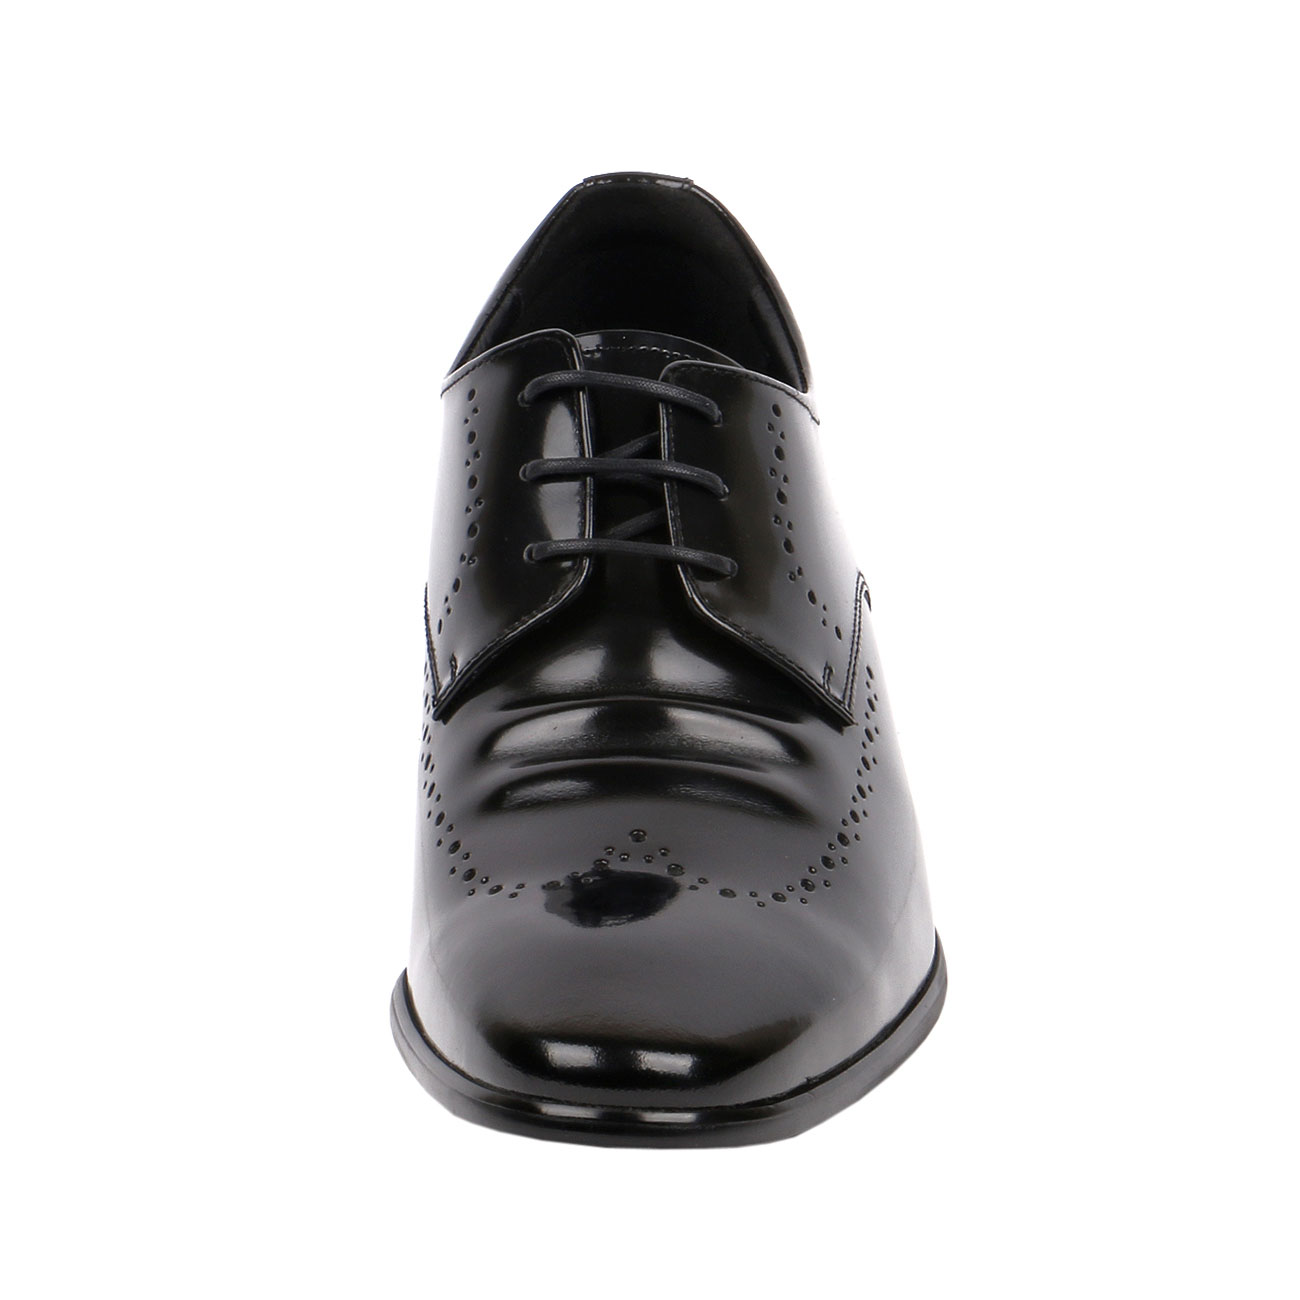 Fusion Wingtip Derby Style Decorative Punching Gentlemen Glossy Leather with Elongated Pointy JW501-2